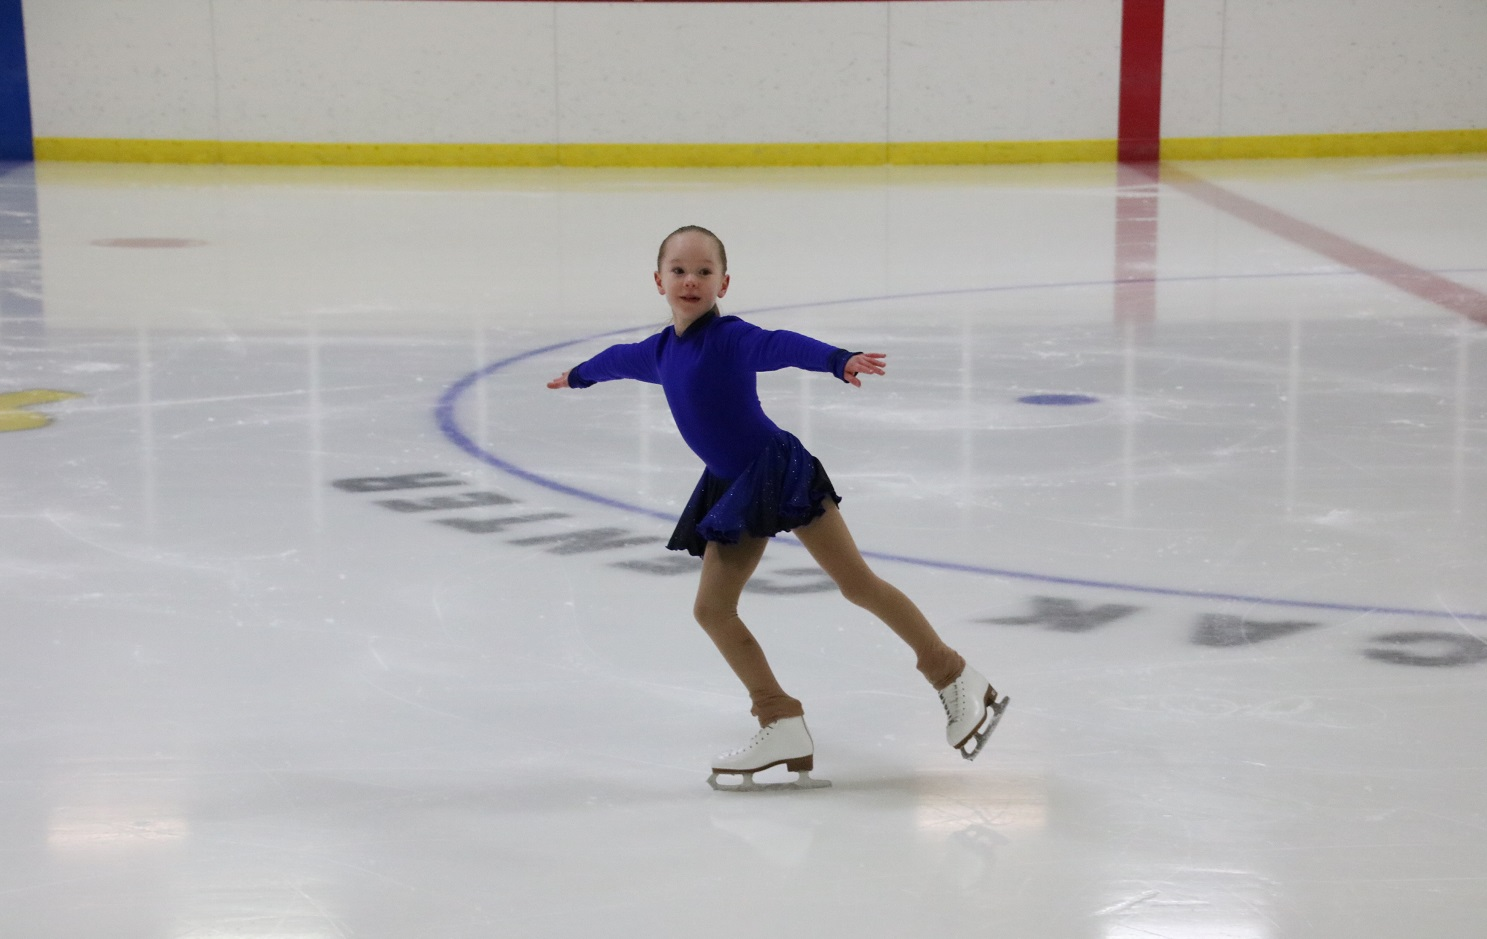 Our STARSkate program has Skaters pursuing figure skating